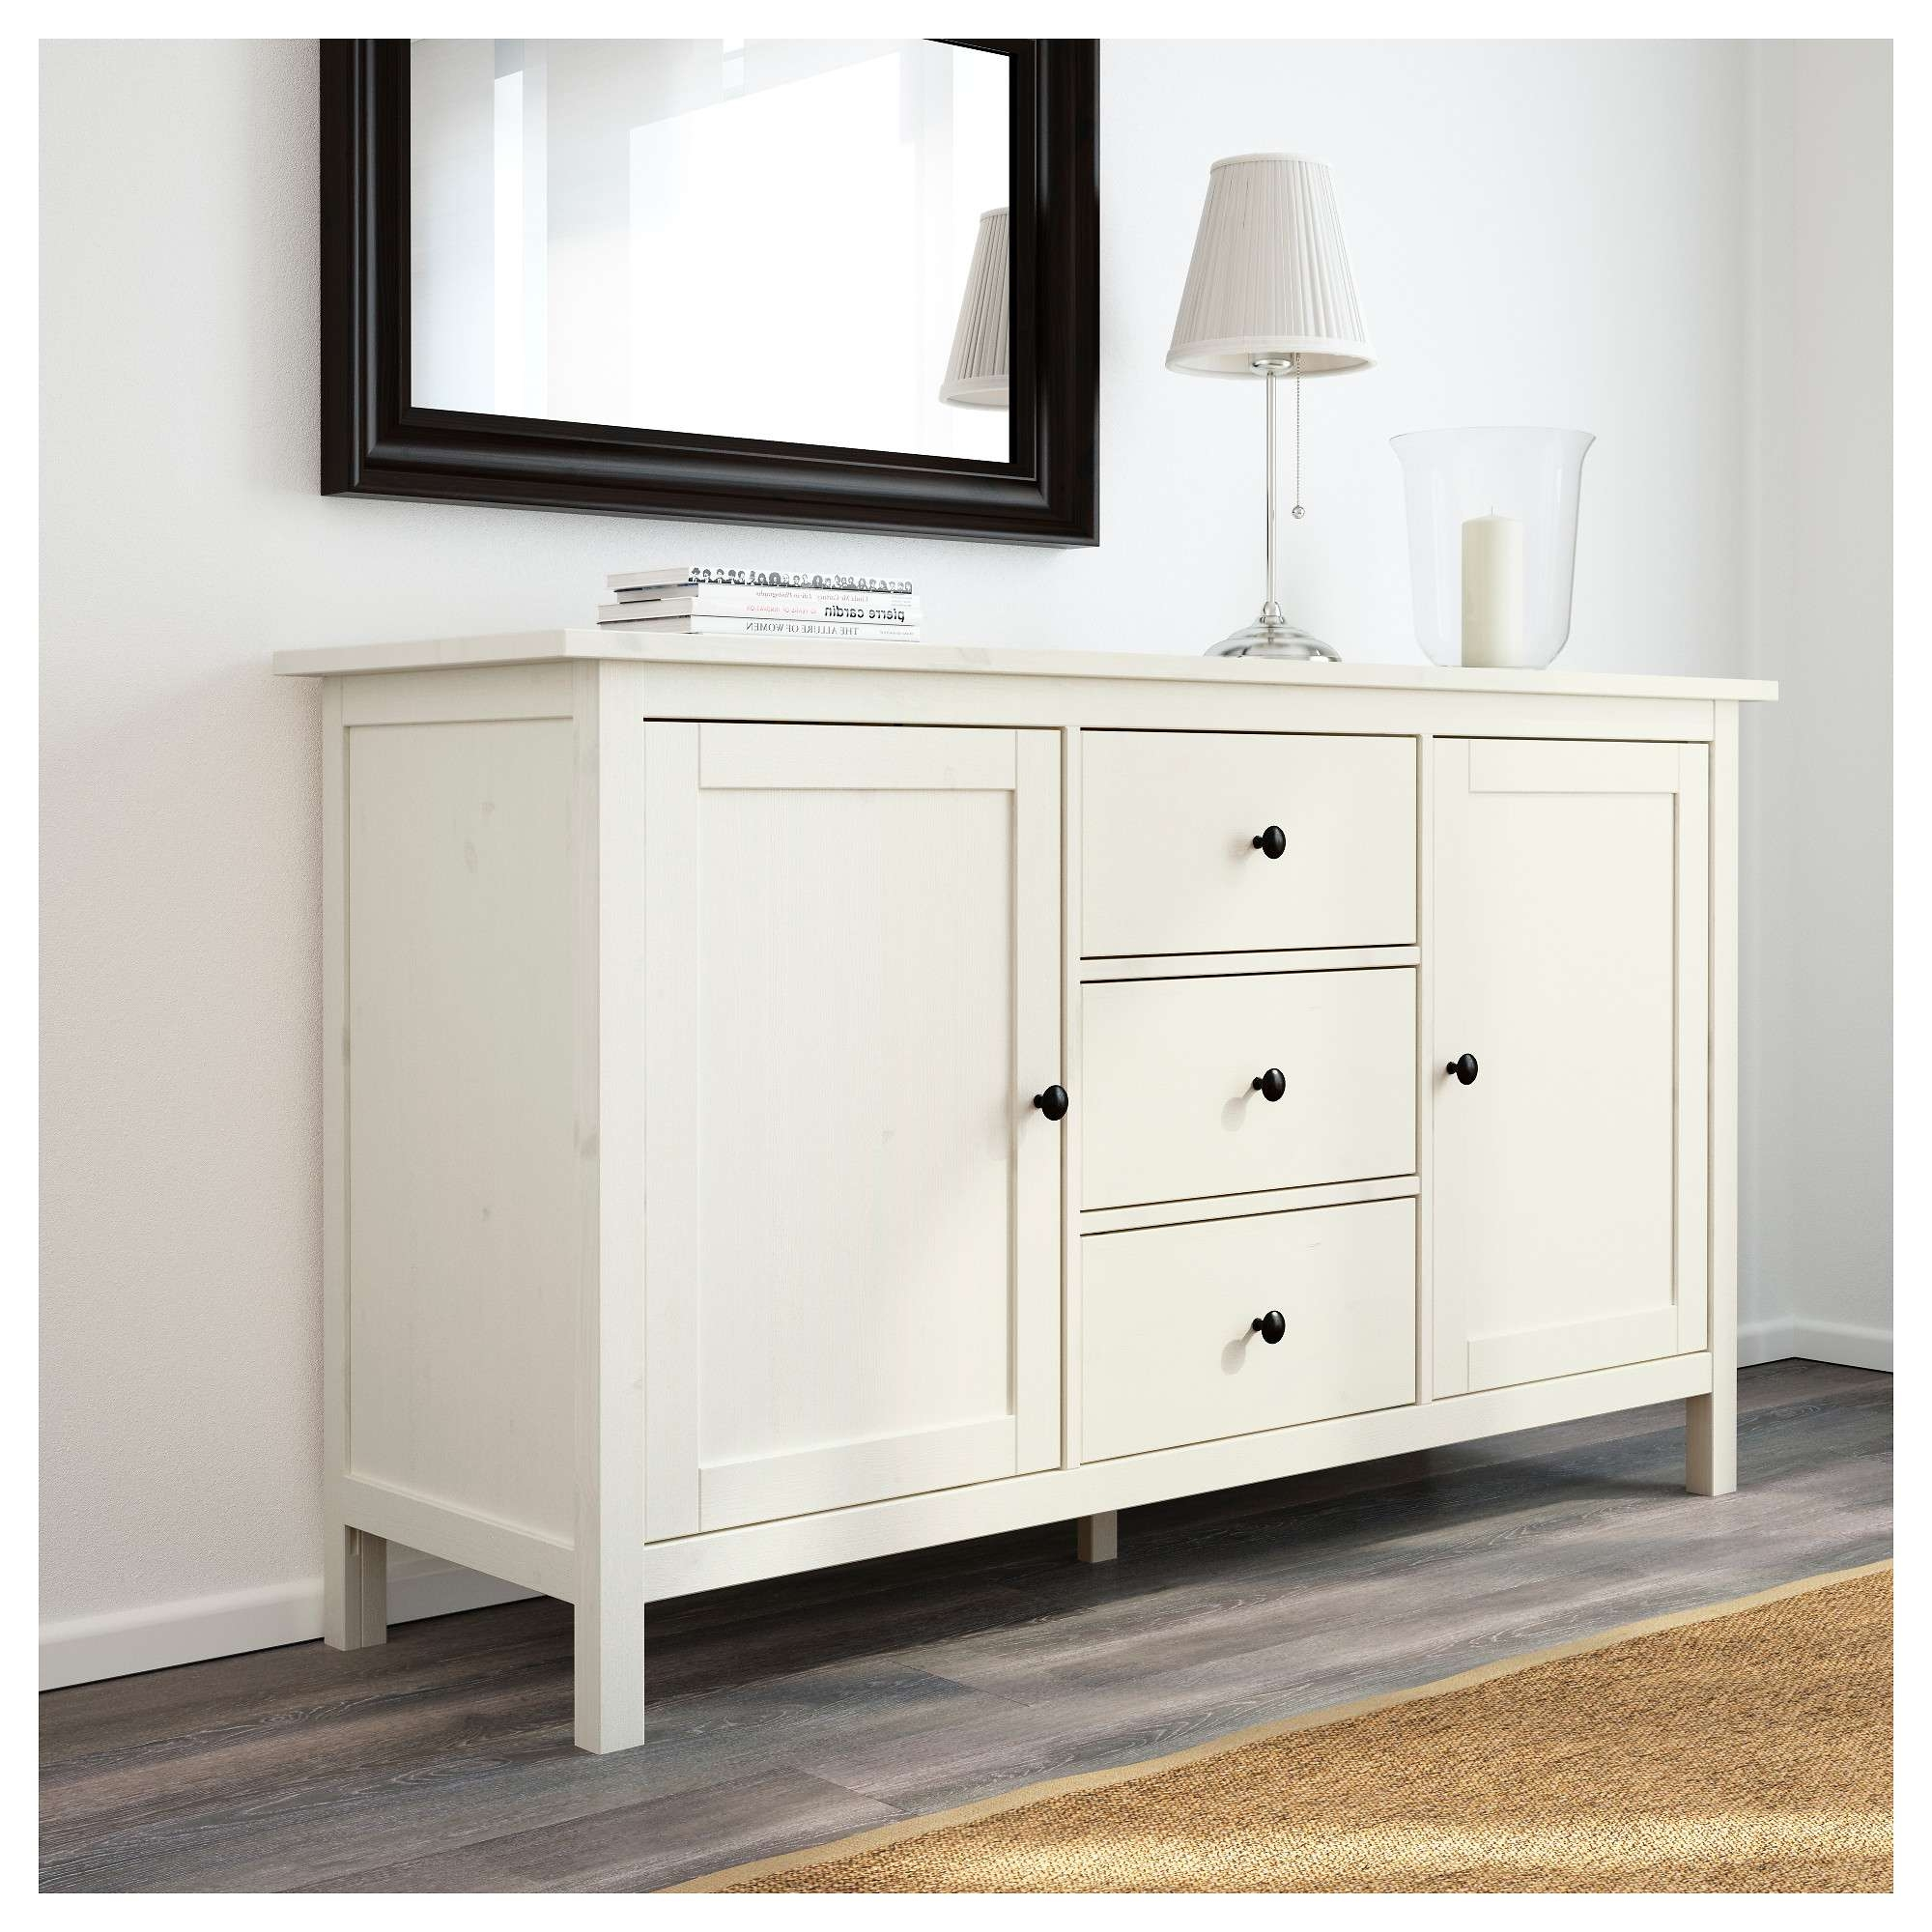 Hemnes Sideboard White Stain 157X88 Cm – Ikea Throughout Ikea Hemnes Sideboards (View 6 of 20)